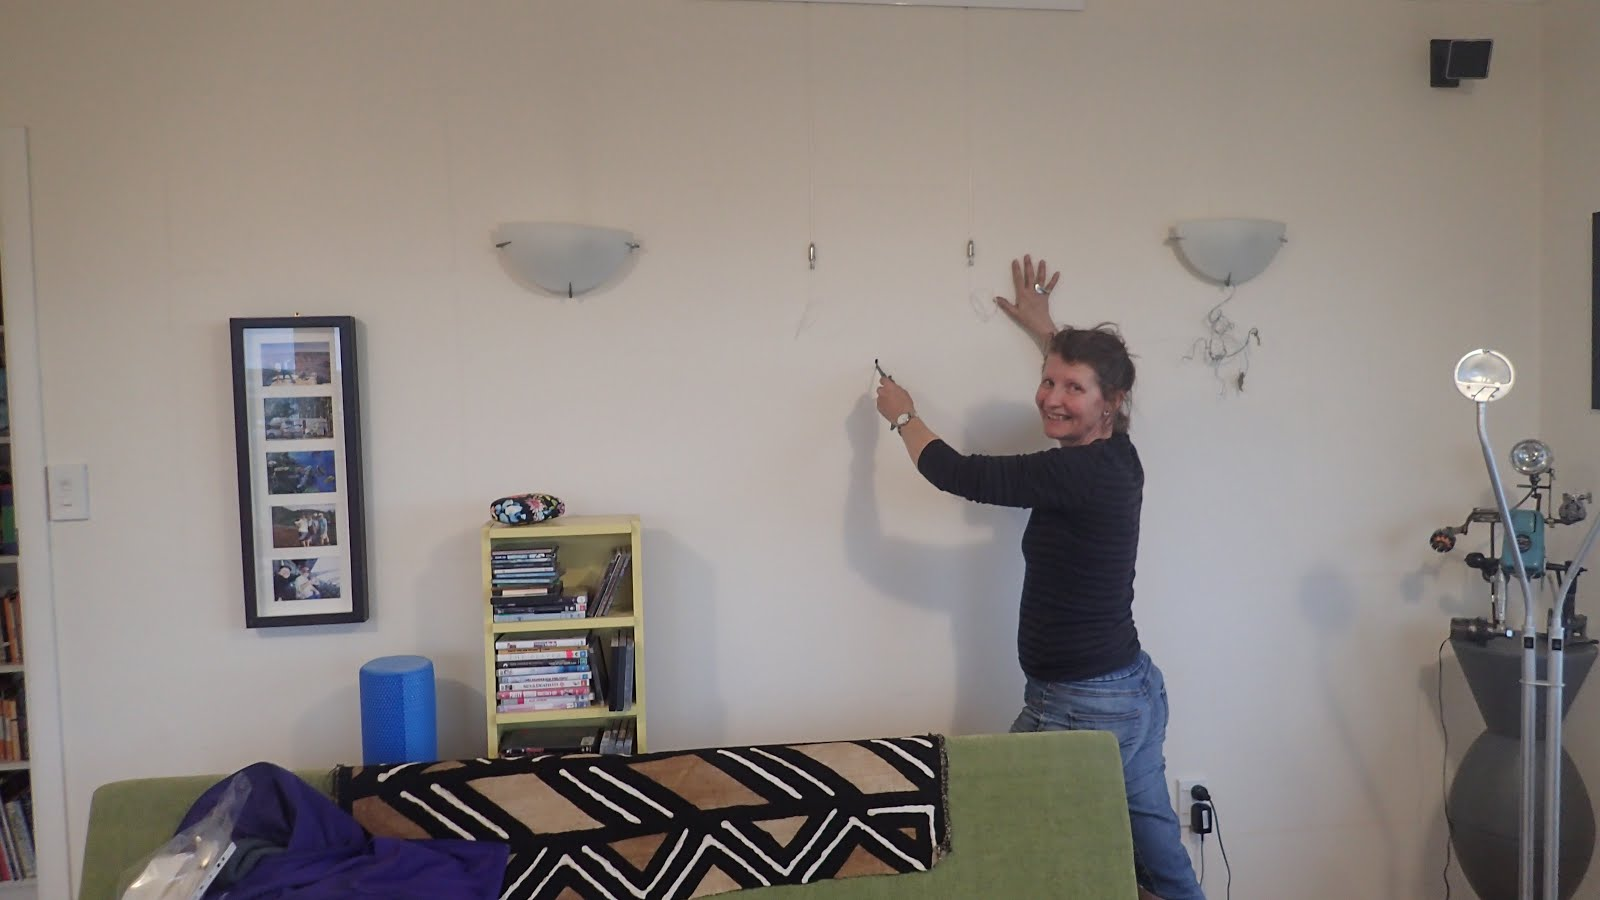 Mish at work: Let's cut holes in this wall